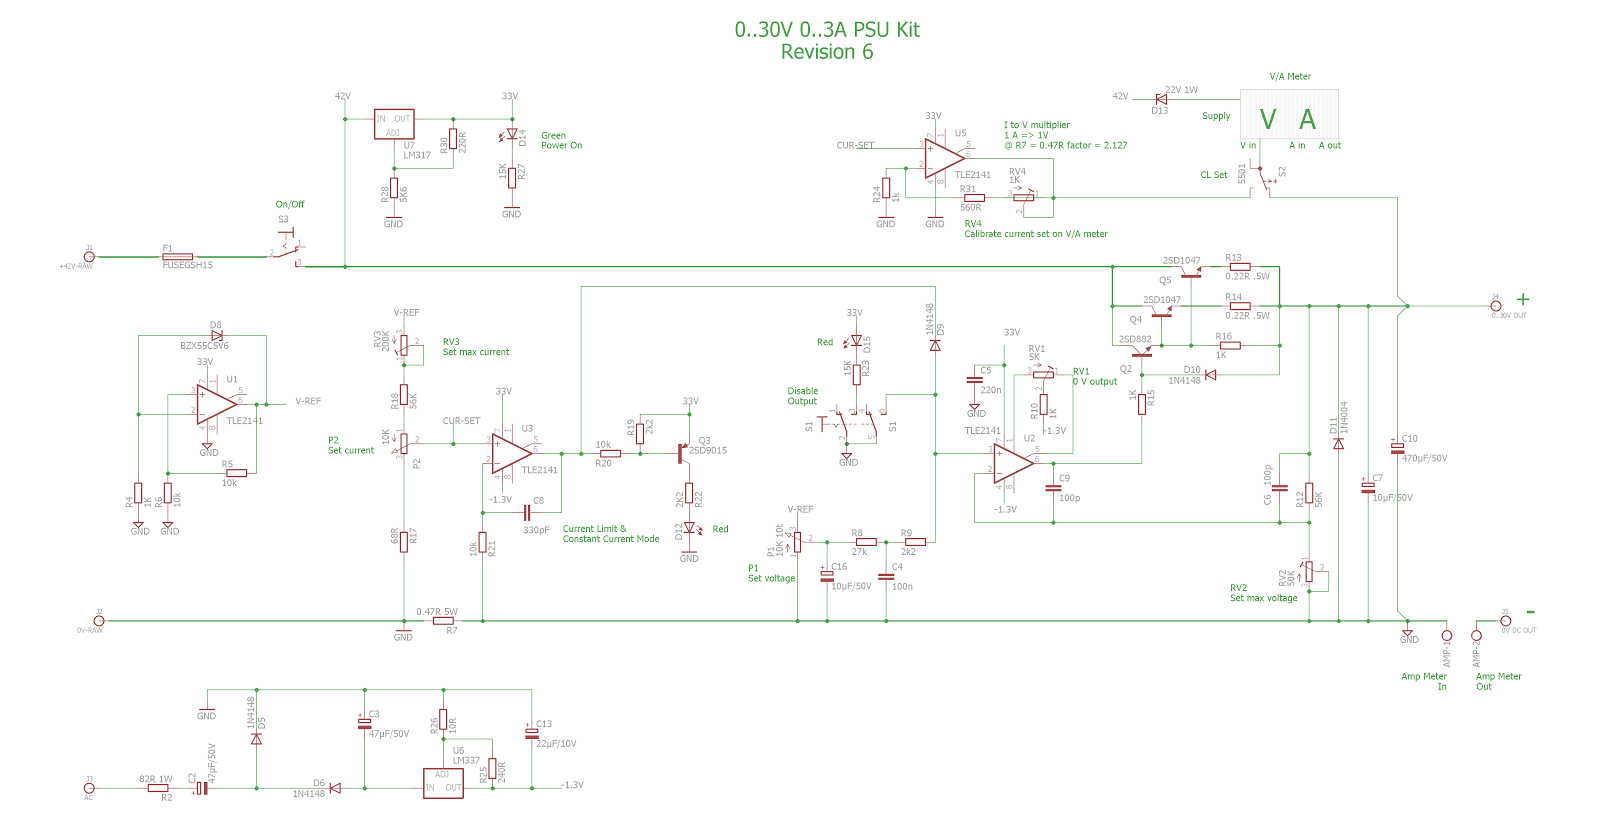 medium resolution of paul s diy electronics blog tuning a 0 30v dc 0 3a psu diy kit 3v 30v 3a adjustable regulated power supply circuit diagram